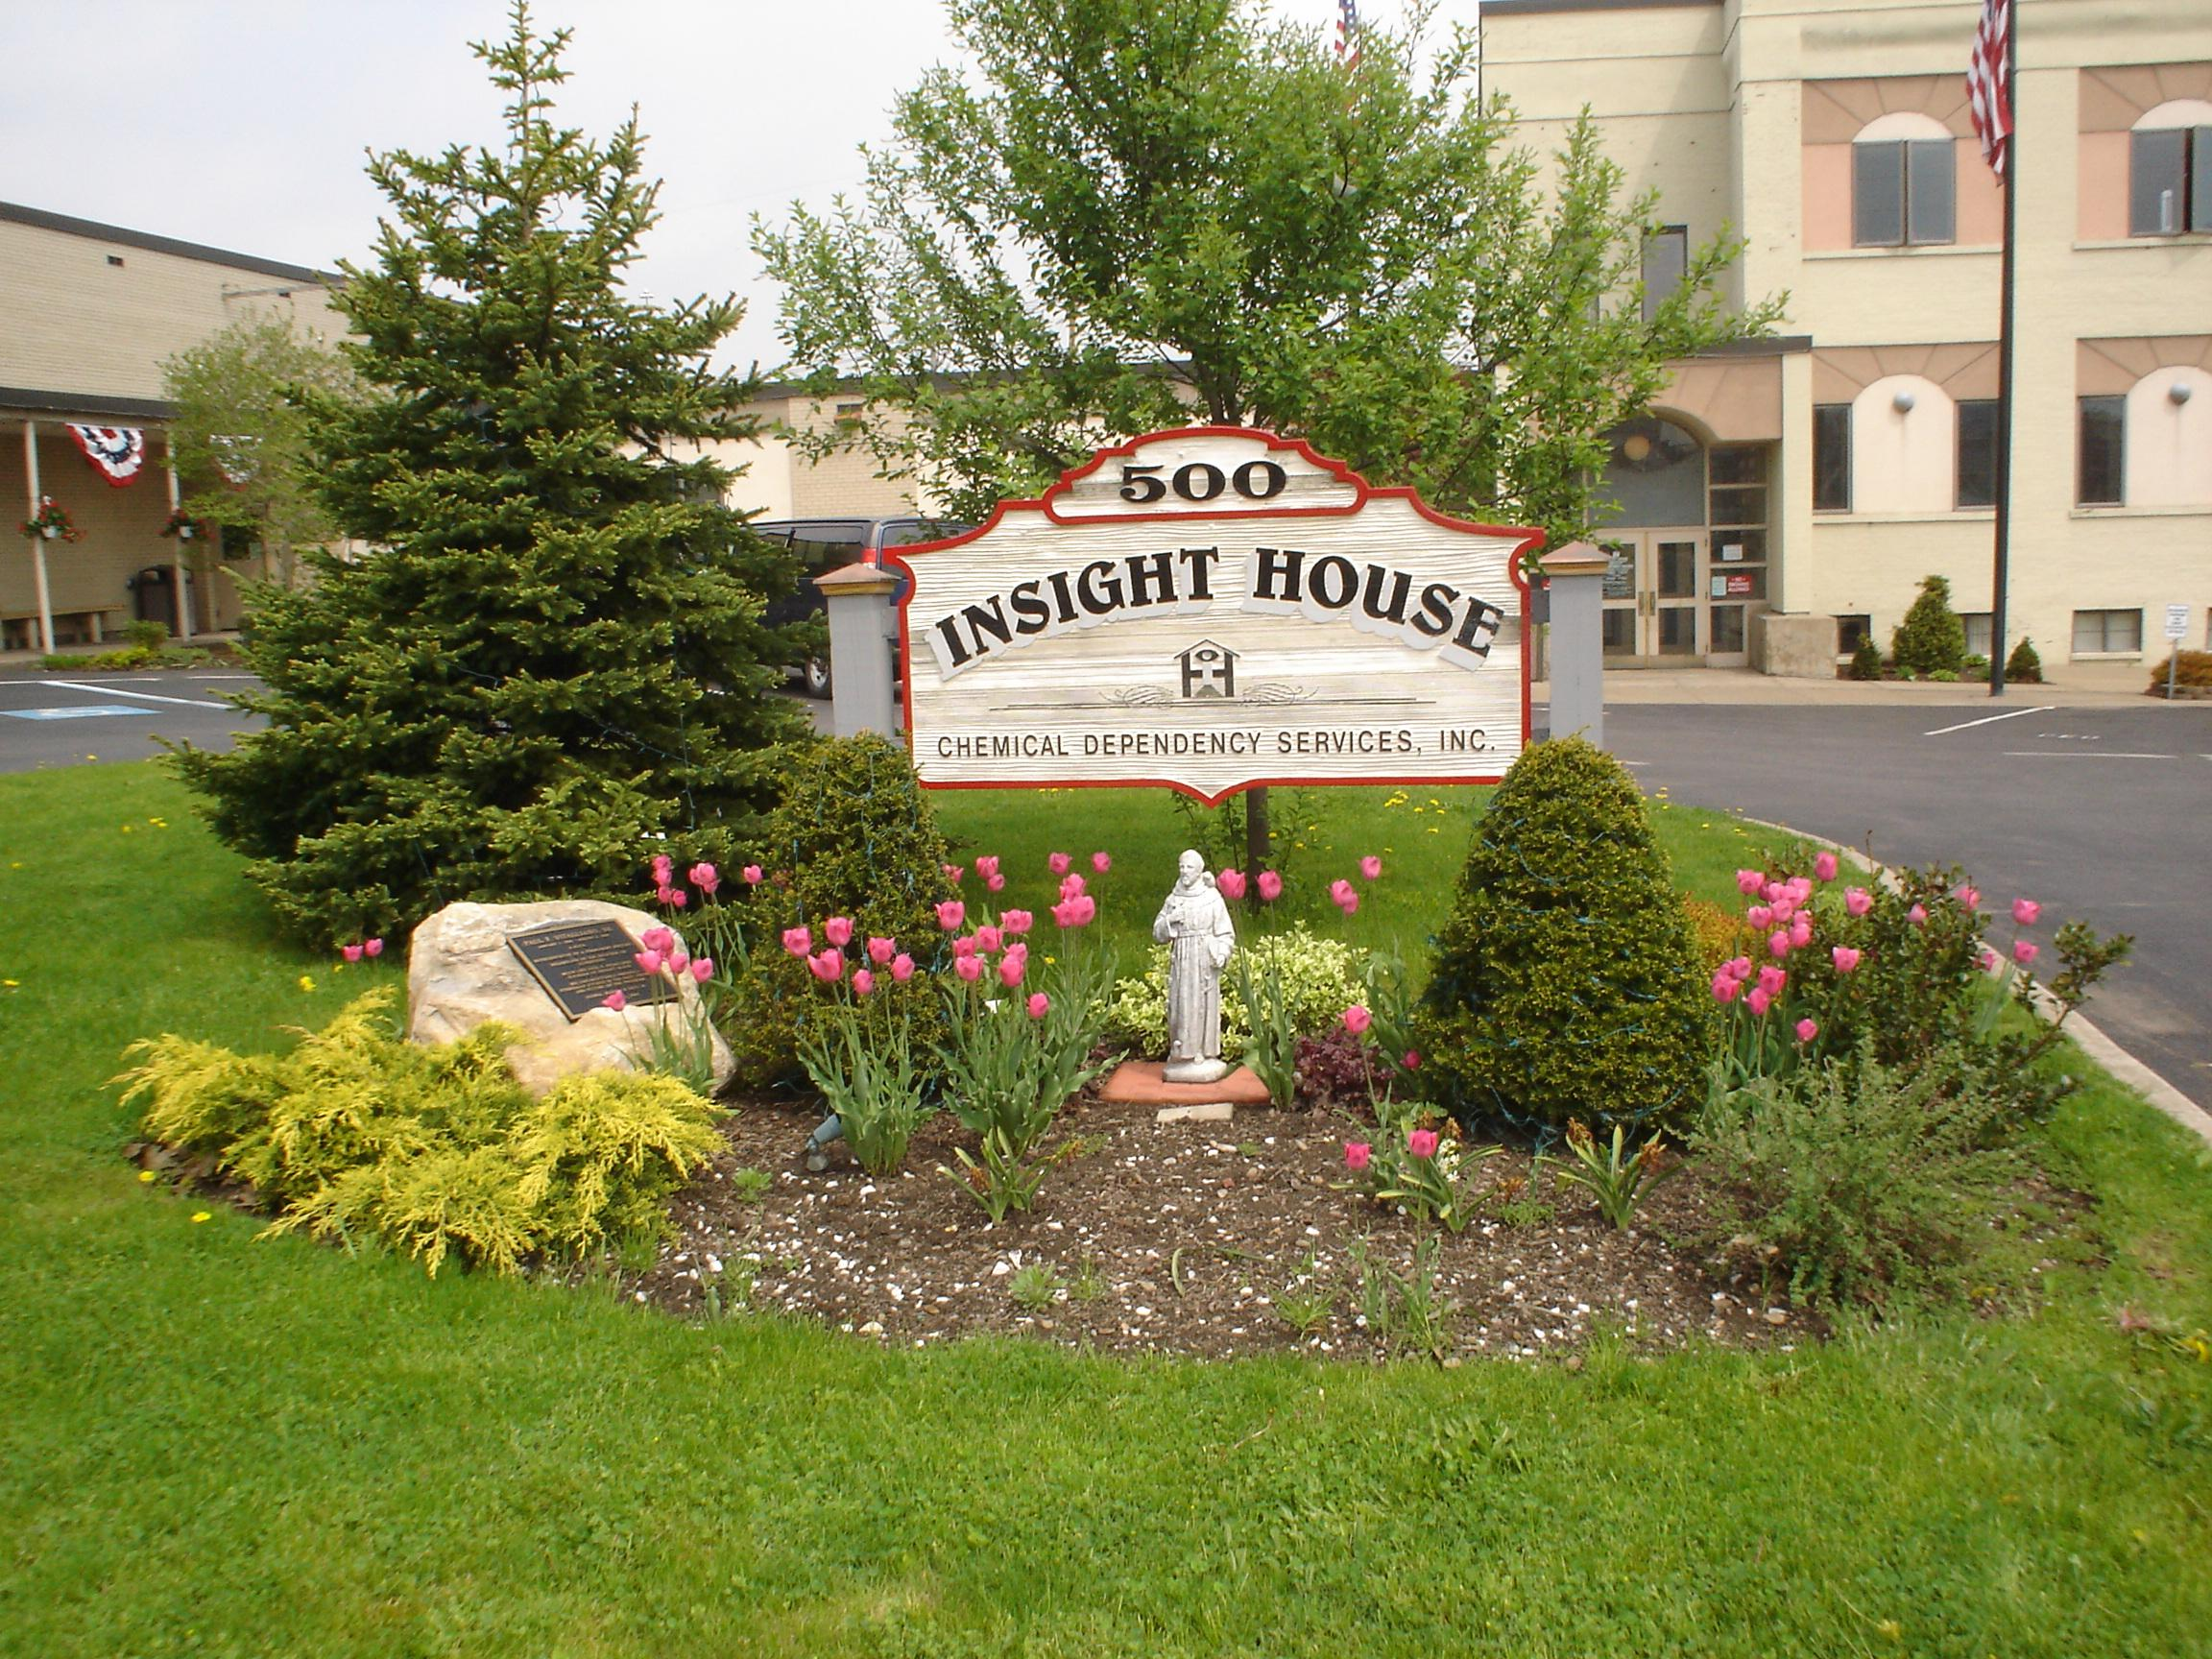 Insight House Chemical Dependency Services In Utica Ny